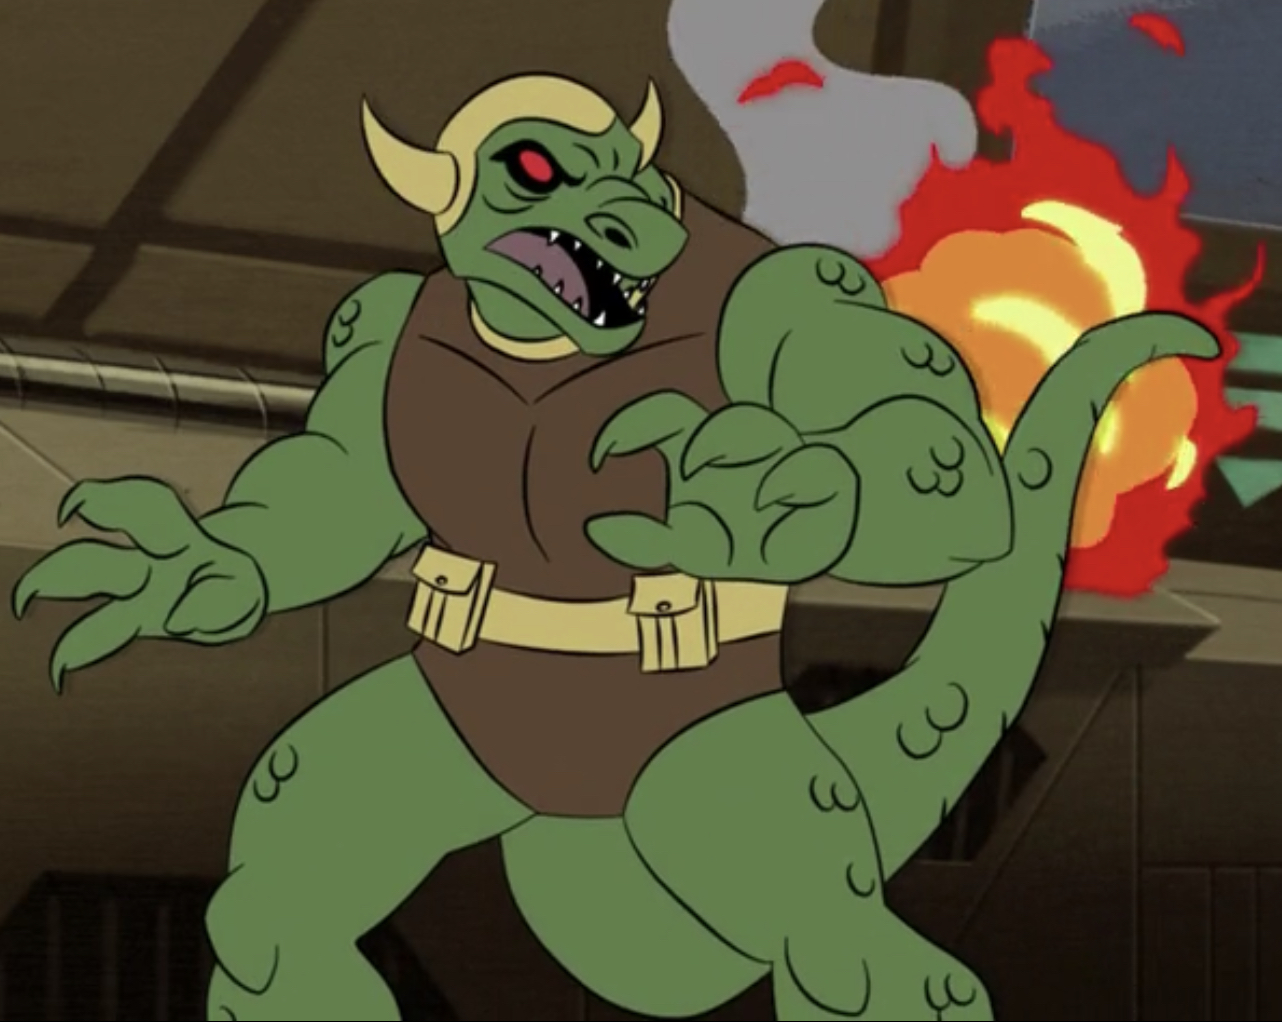 Captain Reptile